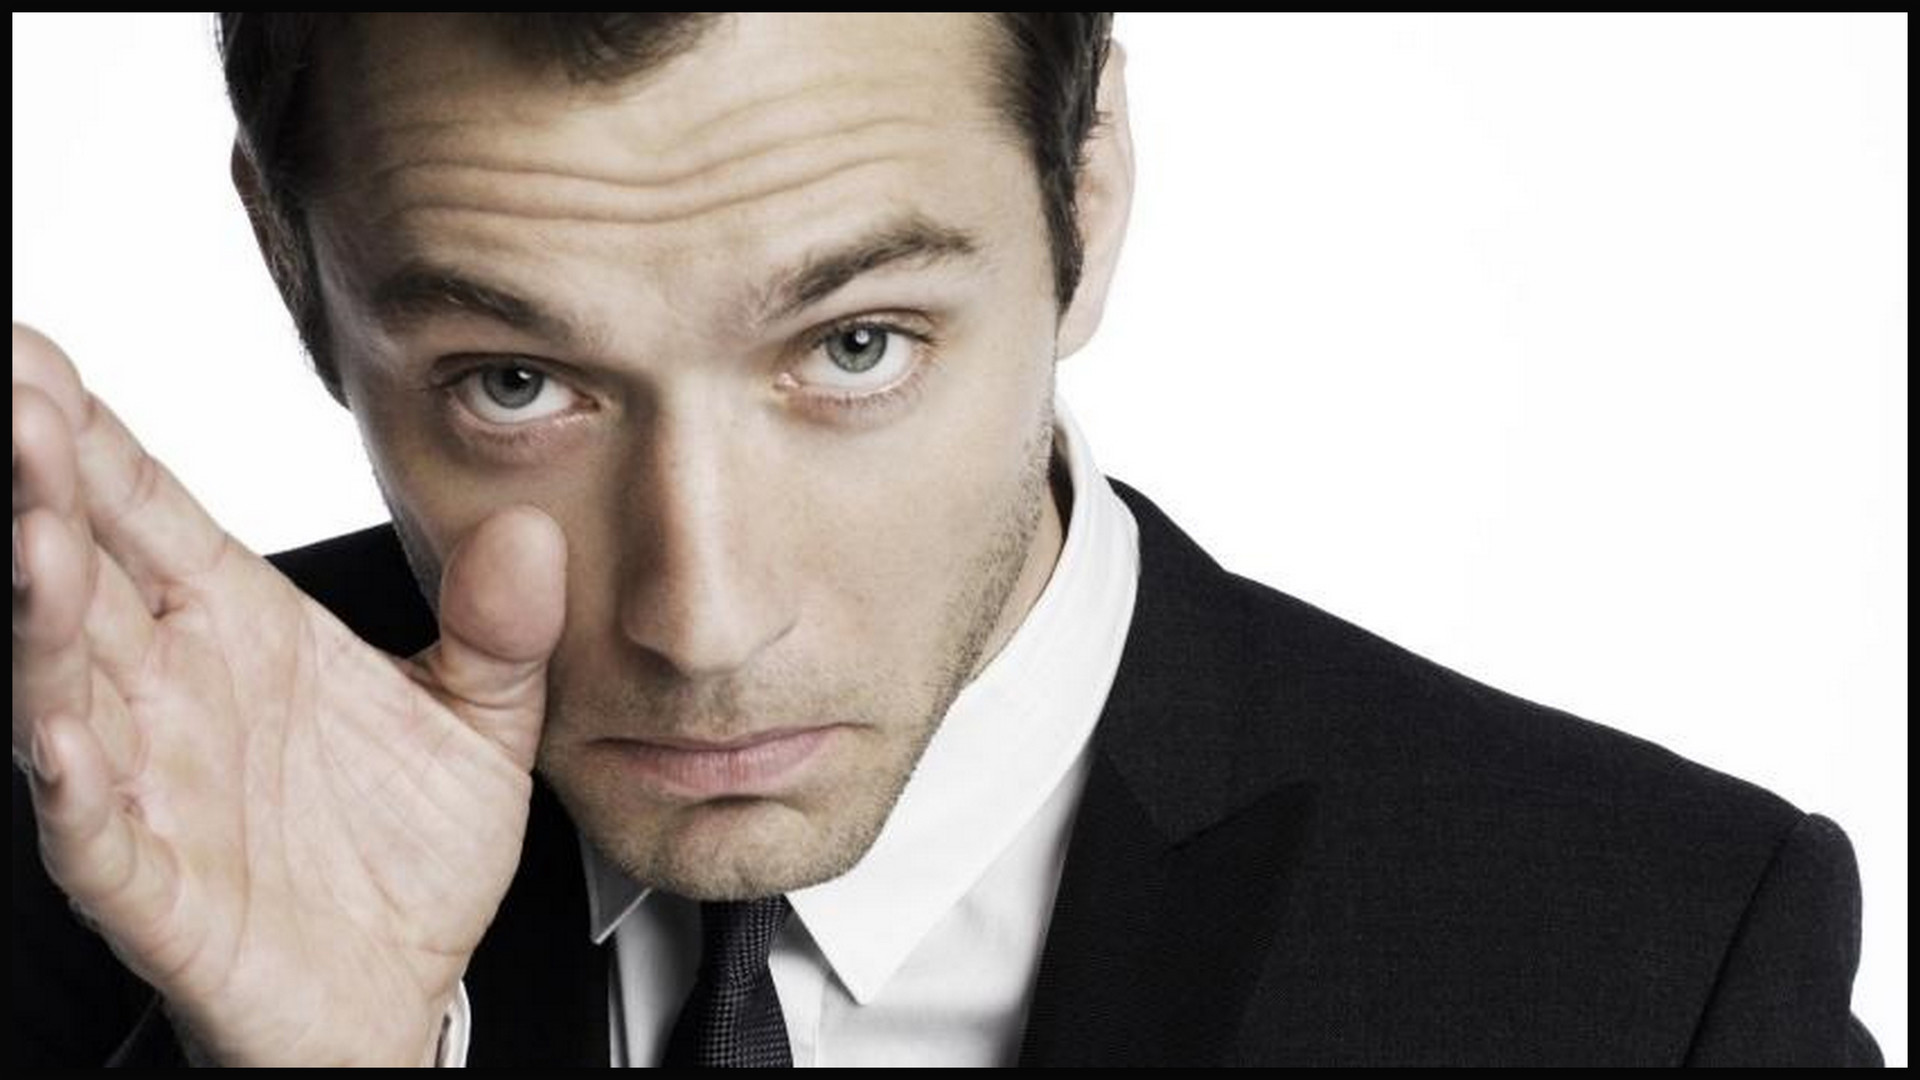 Res: 1920x1080, Jude Law Wallpapers 6 - 1920 X 1080